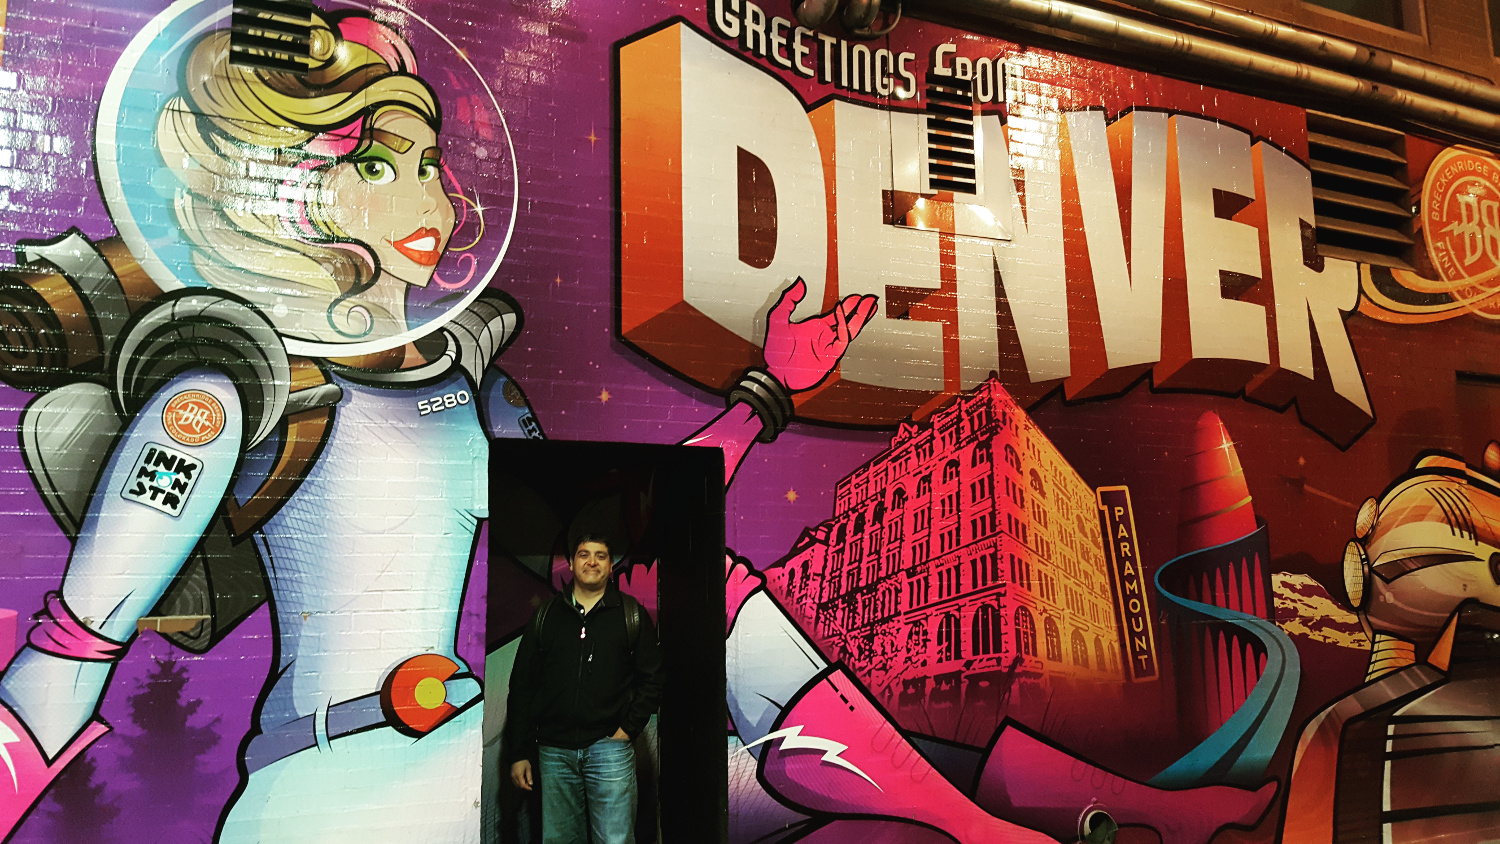 Denver Mural off the 16th Street Mall with David - a resident's guide to Denver